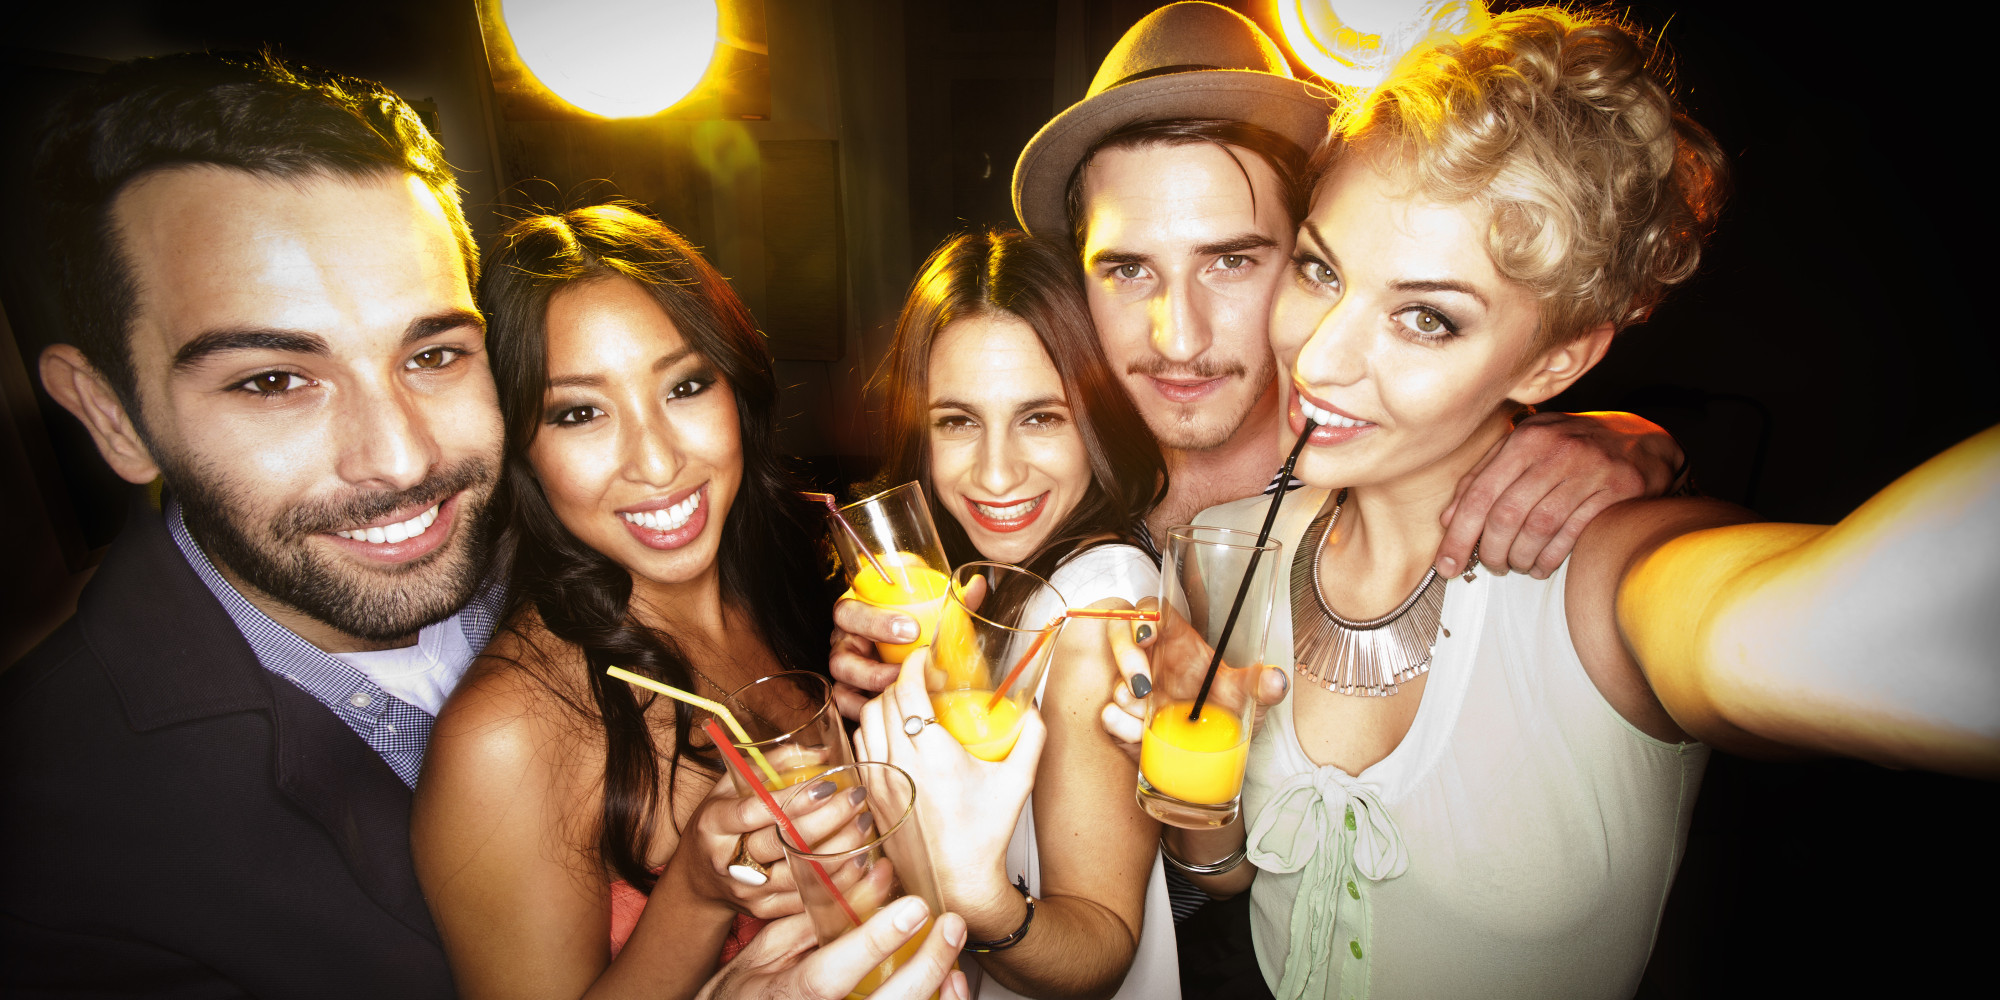 10 parties to throw in your apartment huffpost for Best drinks to have at a party